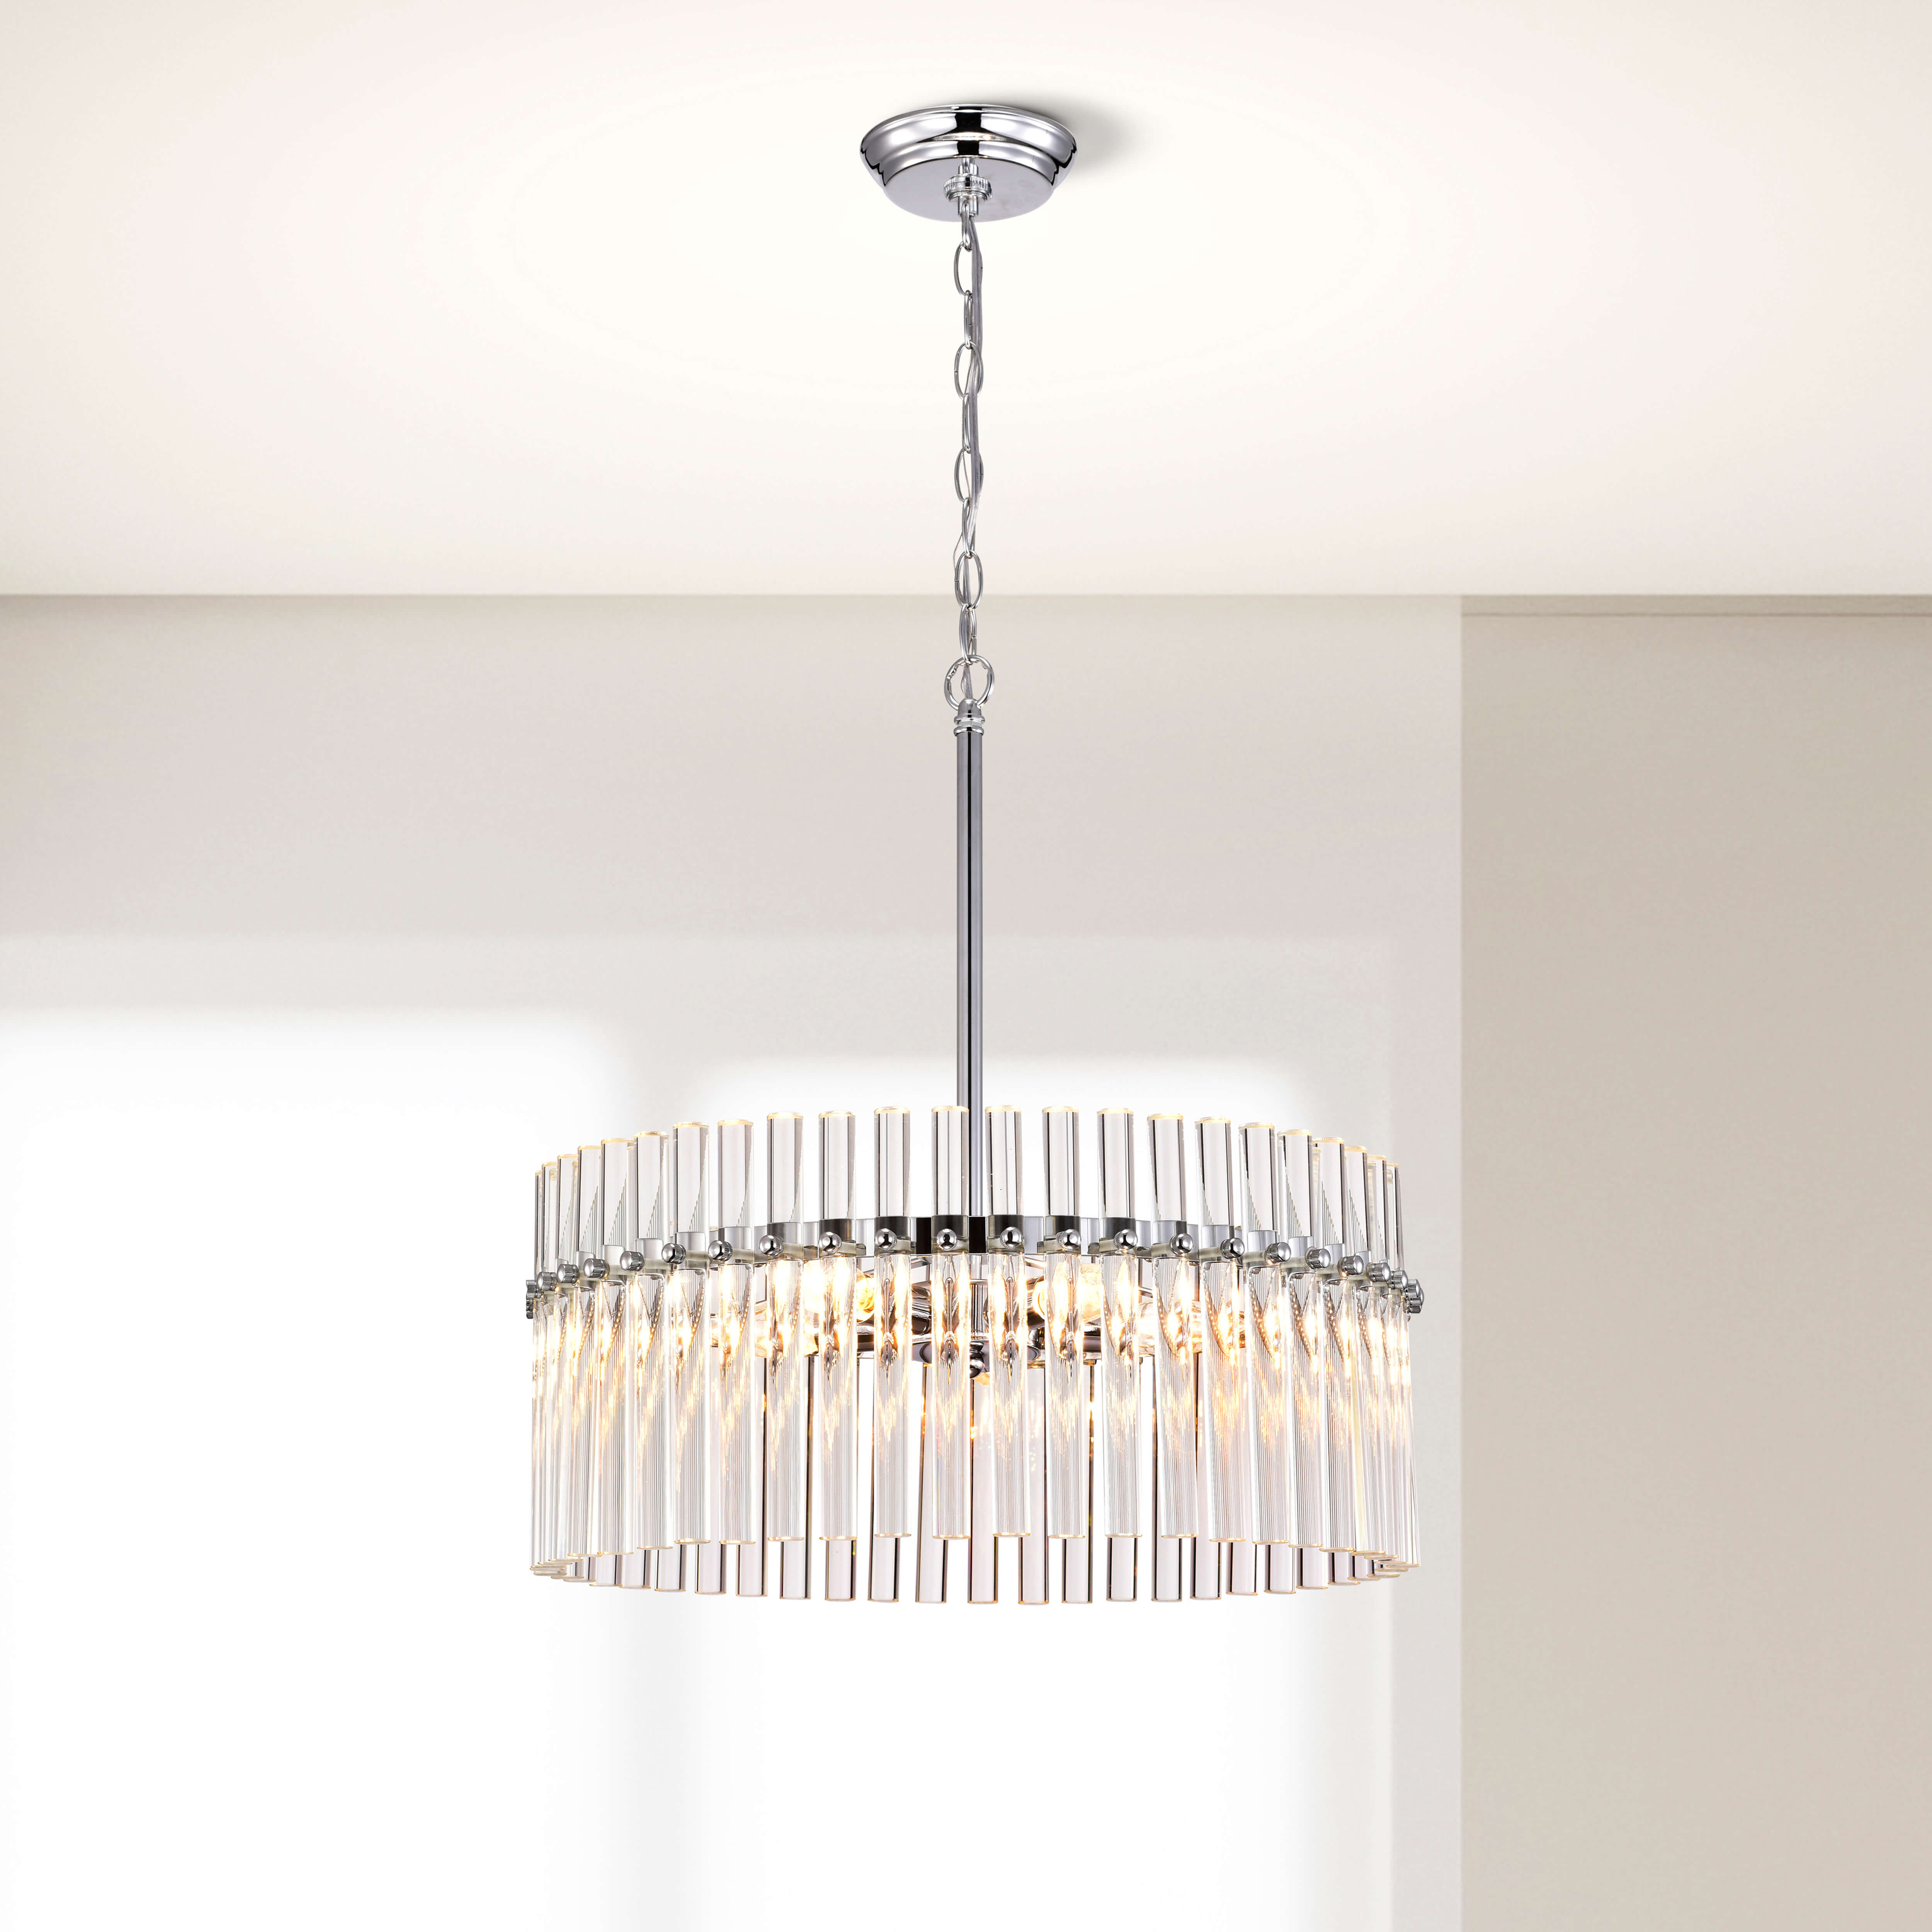 Casandra 4-light Chrome Pendant Crystal Chandelier LJ-9733-XVD